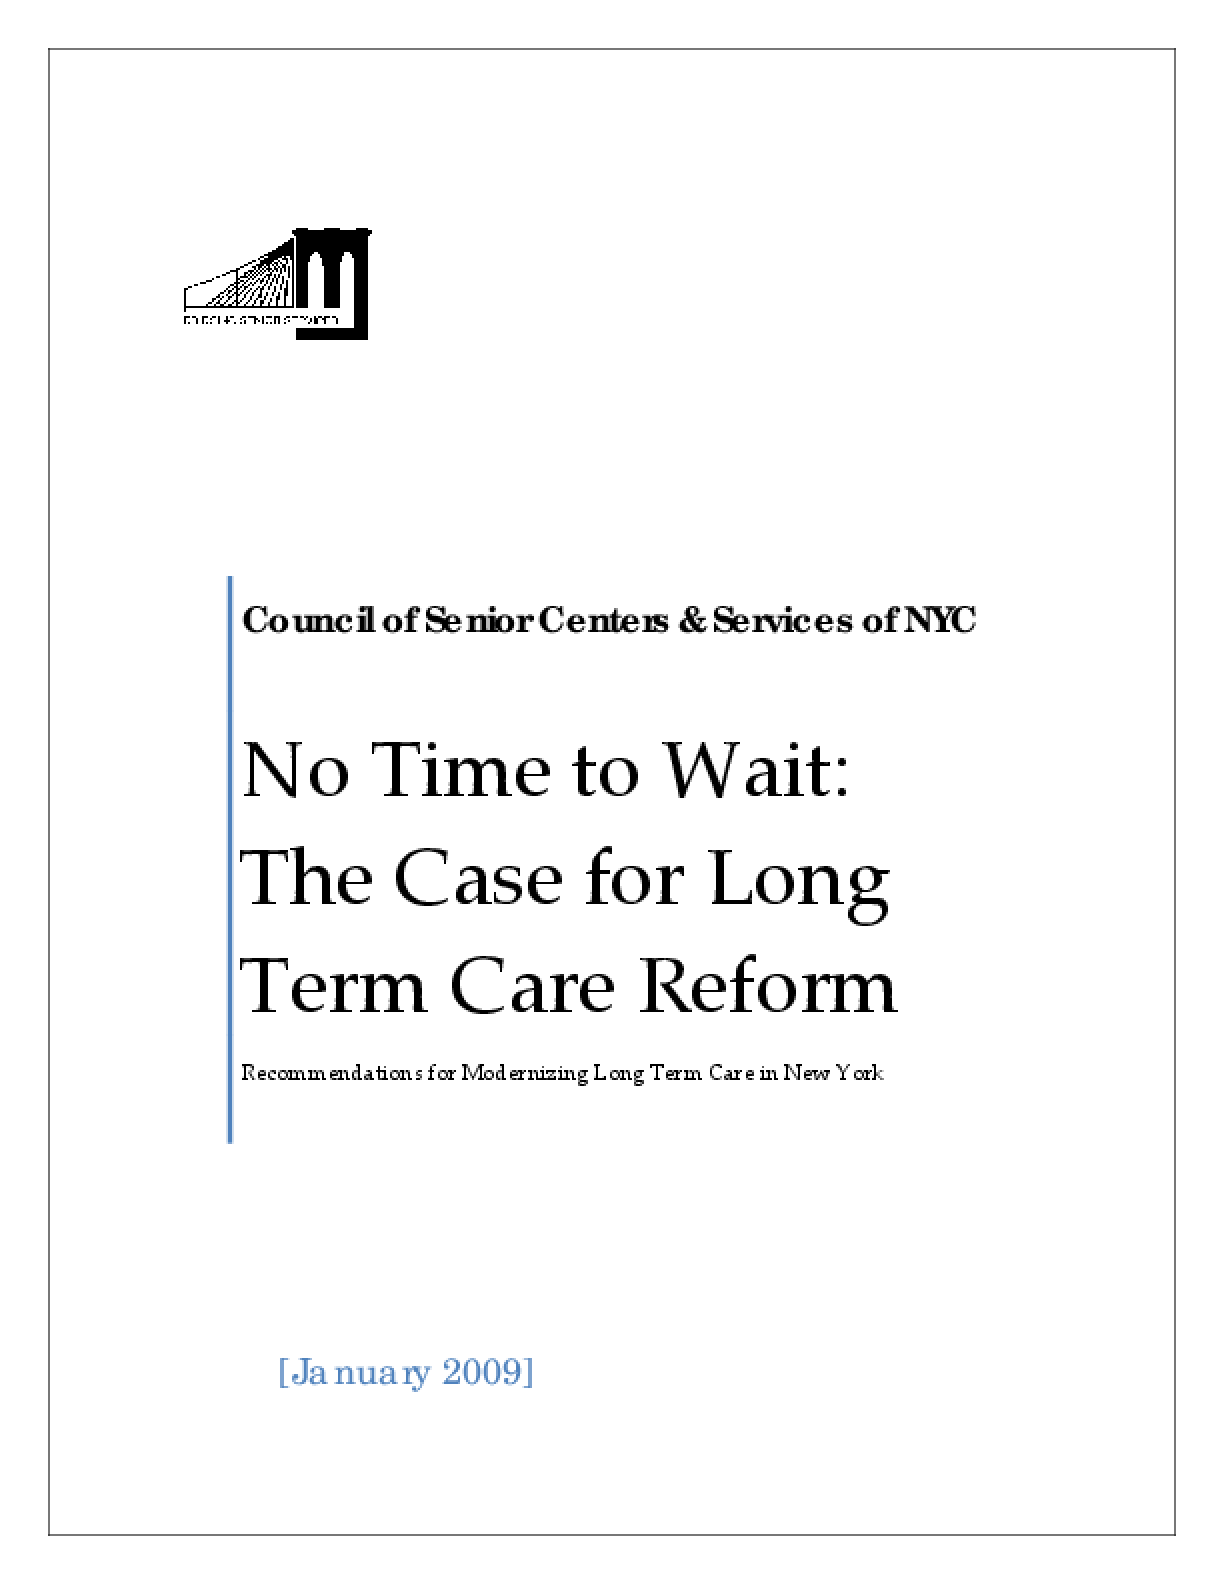 No Time to Wait: The Case for Long Term Care Reform